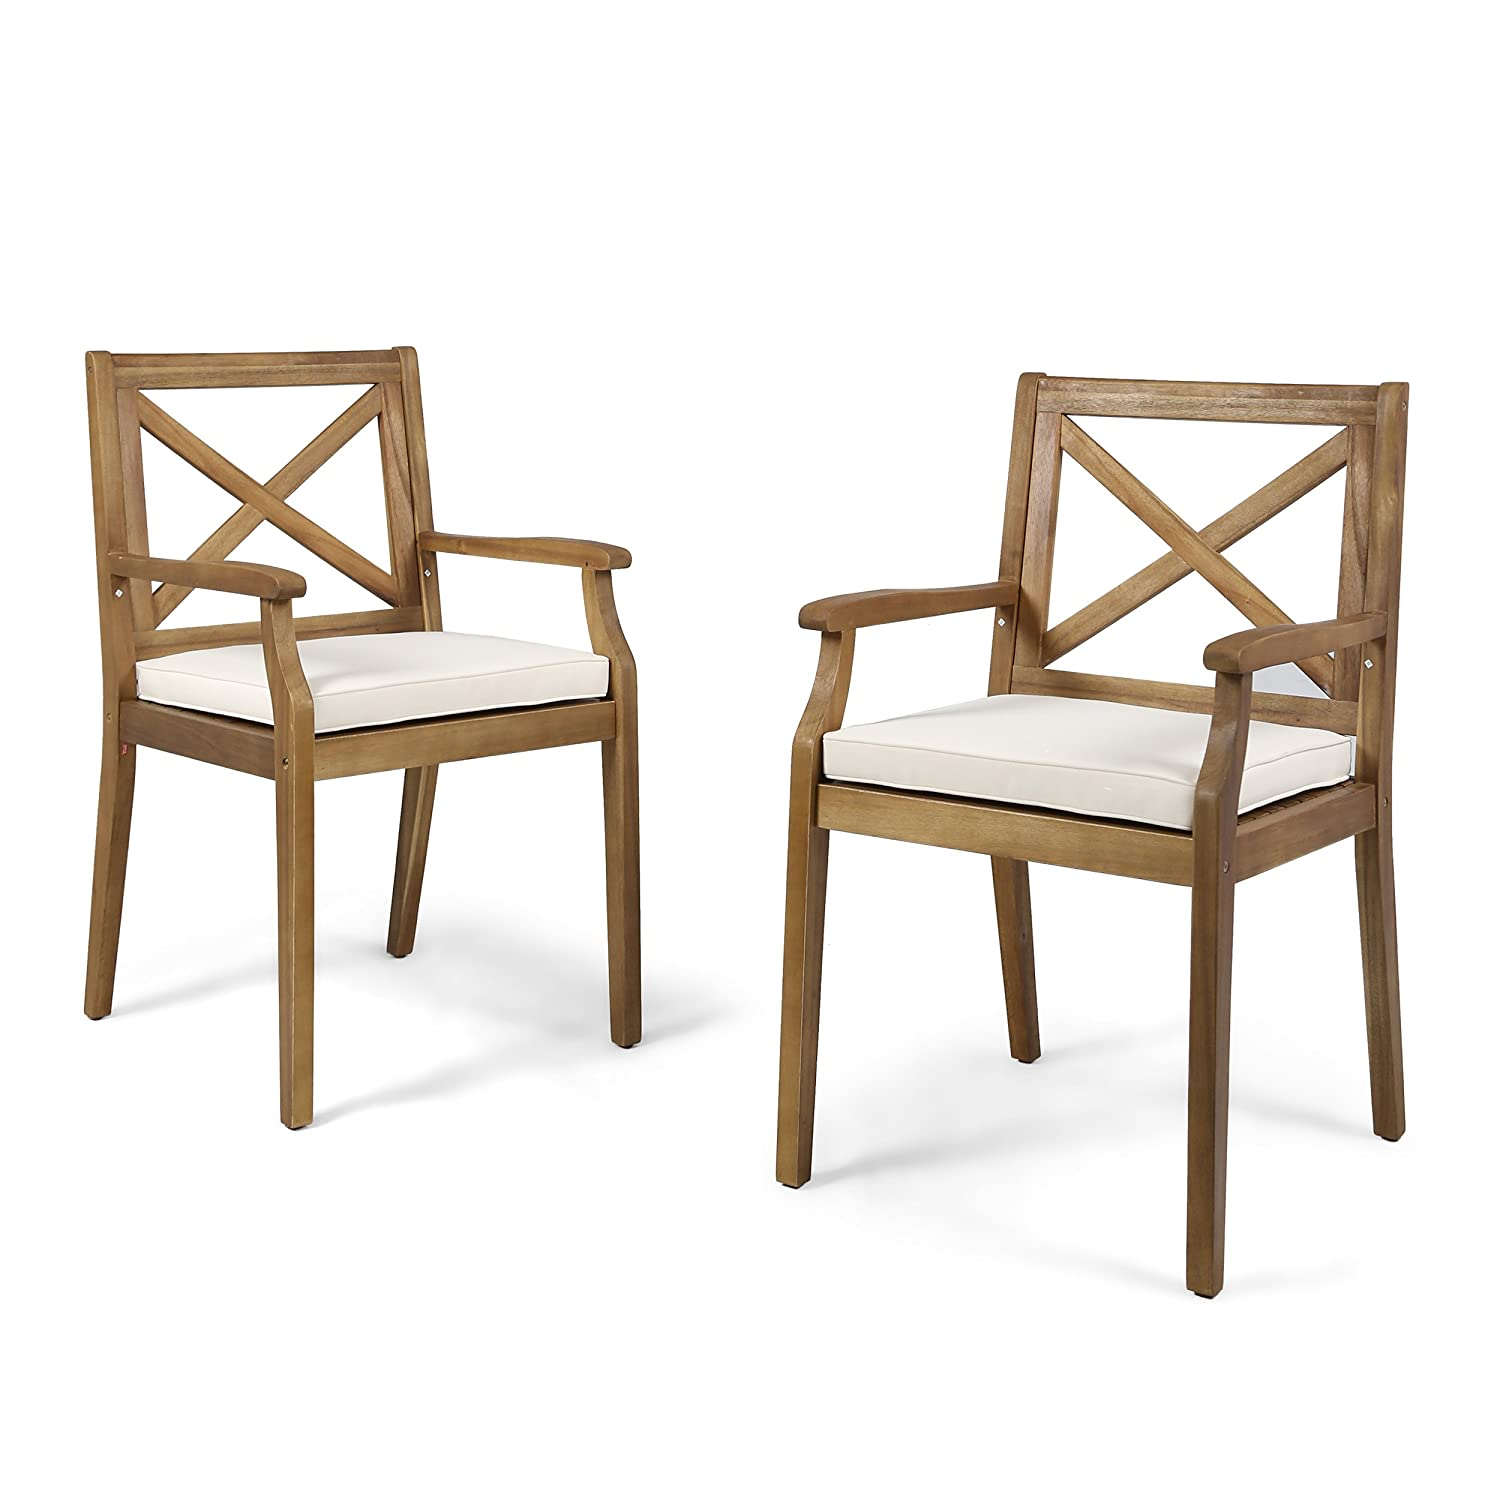 Christopher Knight Home 304680 Peter Outdoor Acacia Wood Dining Chair Set of 2, Teak Cream Cushion